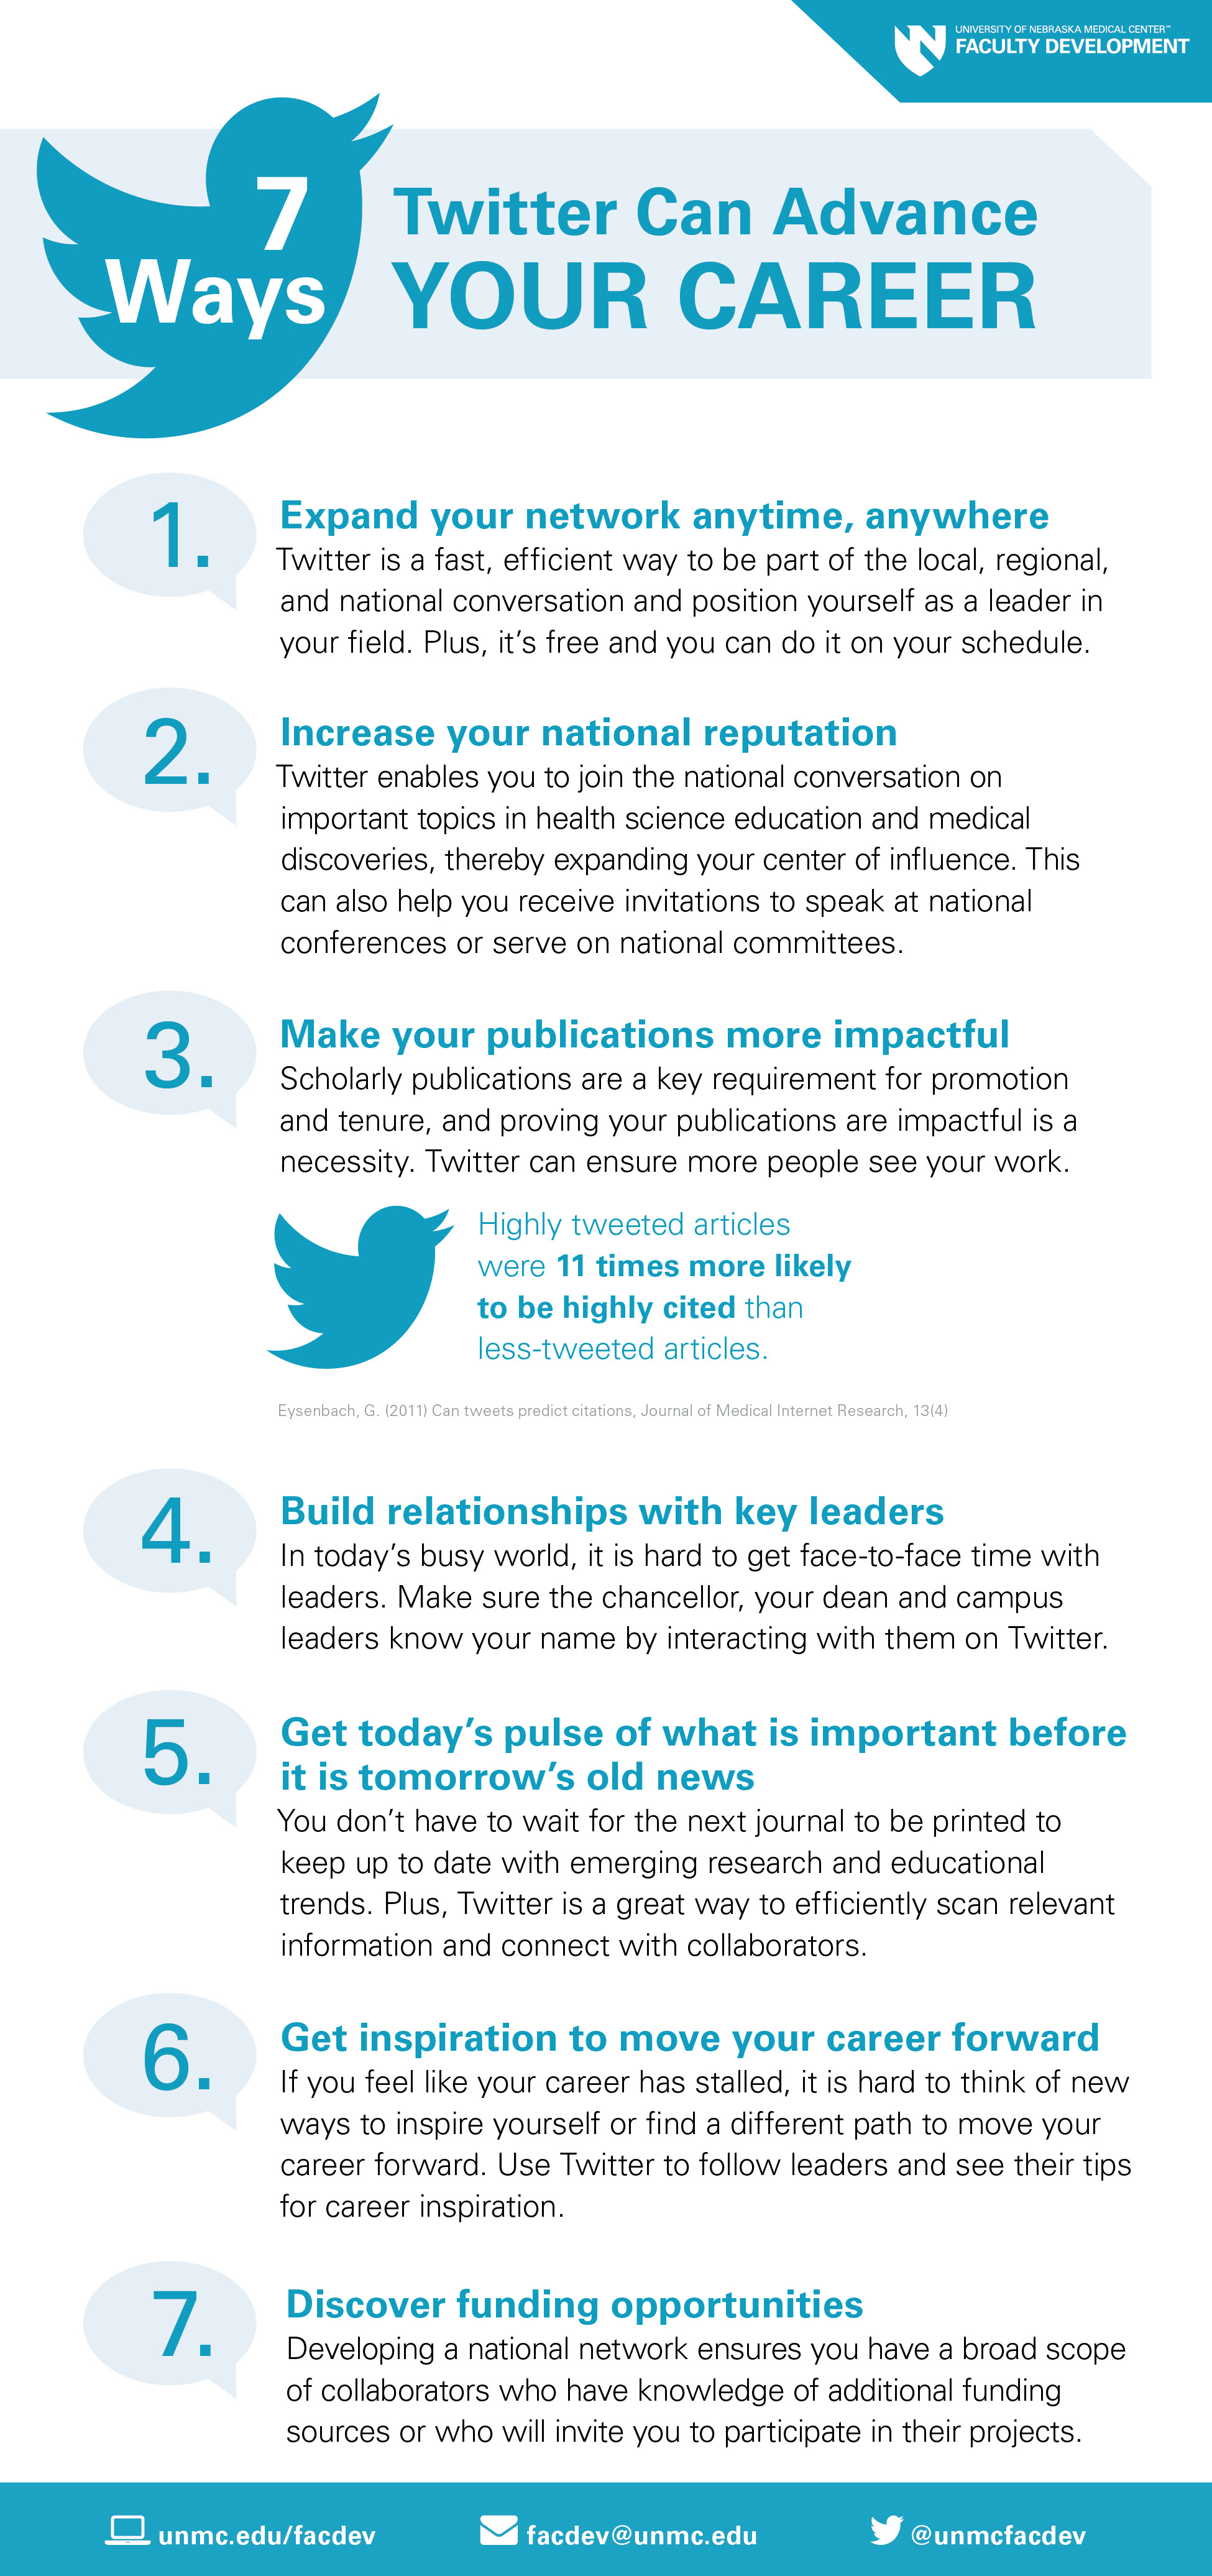 7 ways Twitter can advance your career